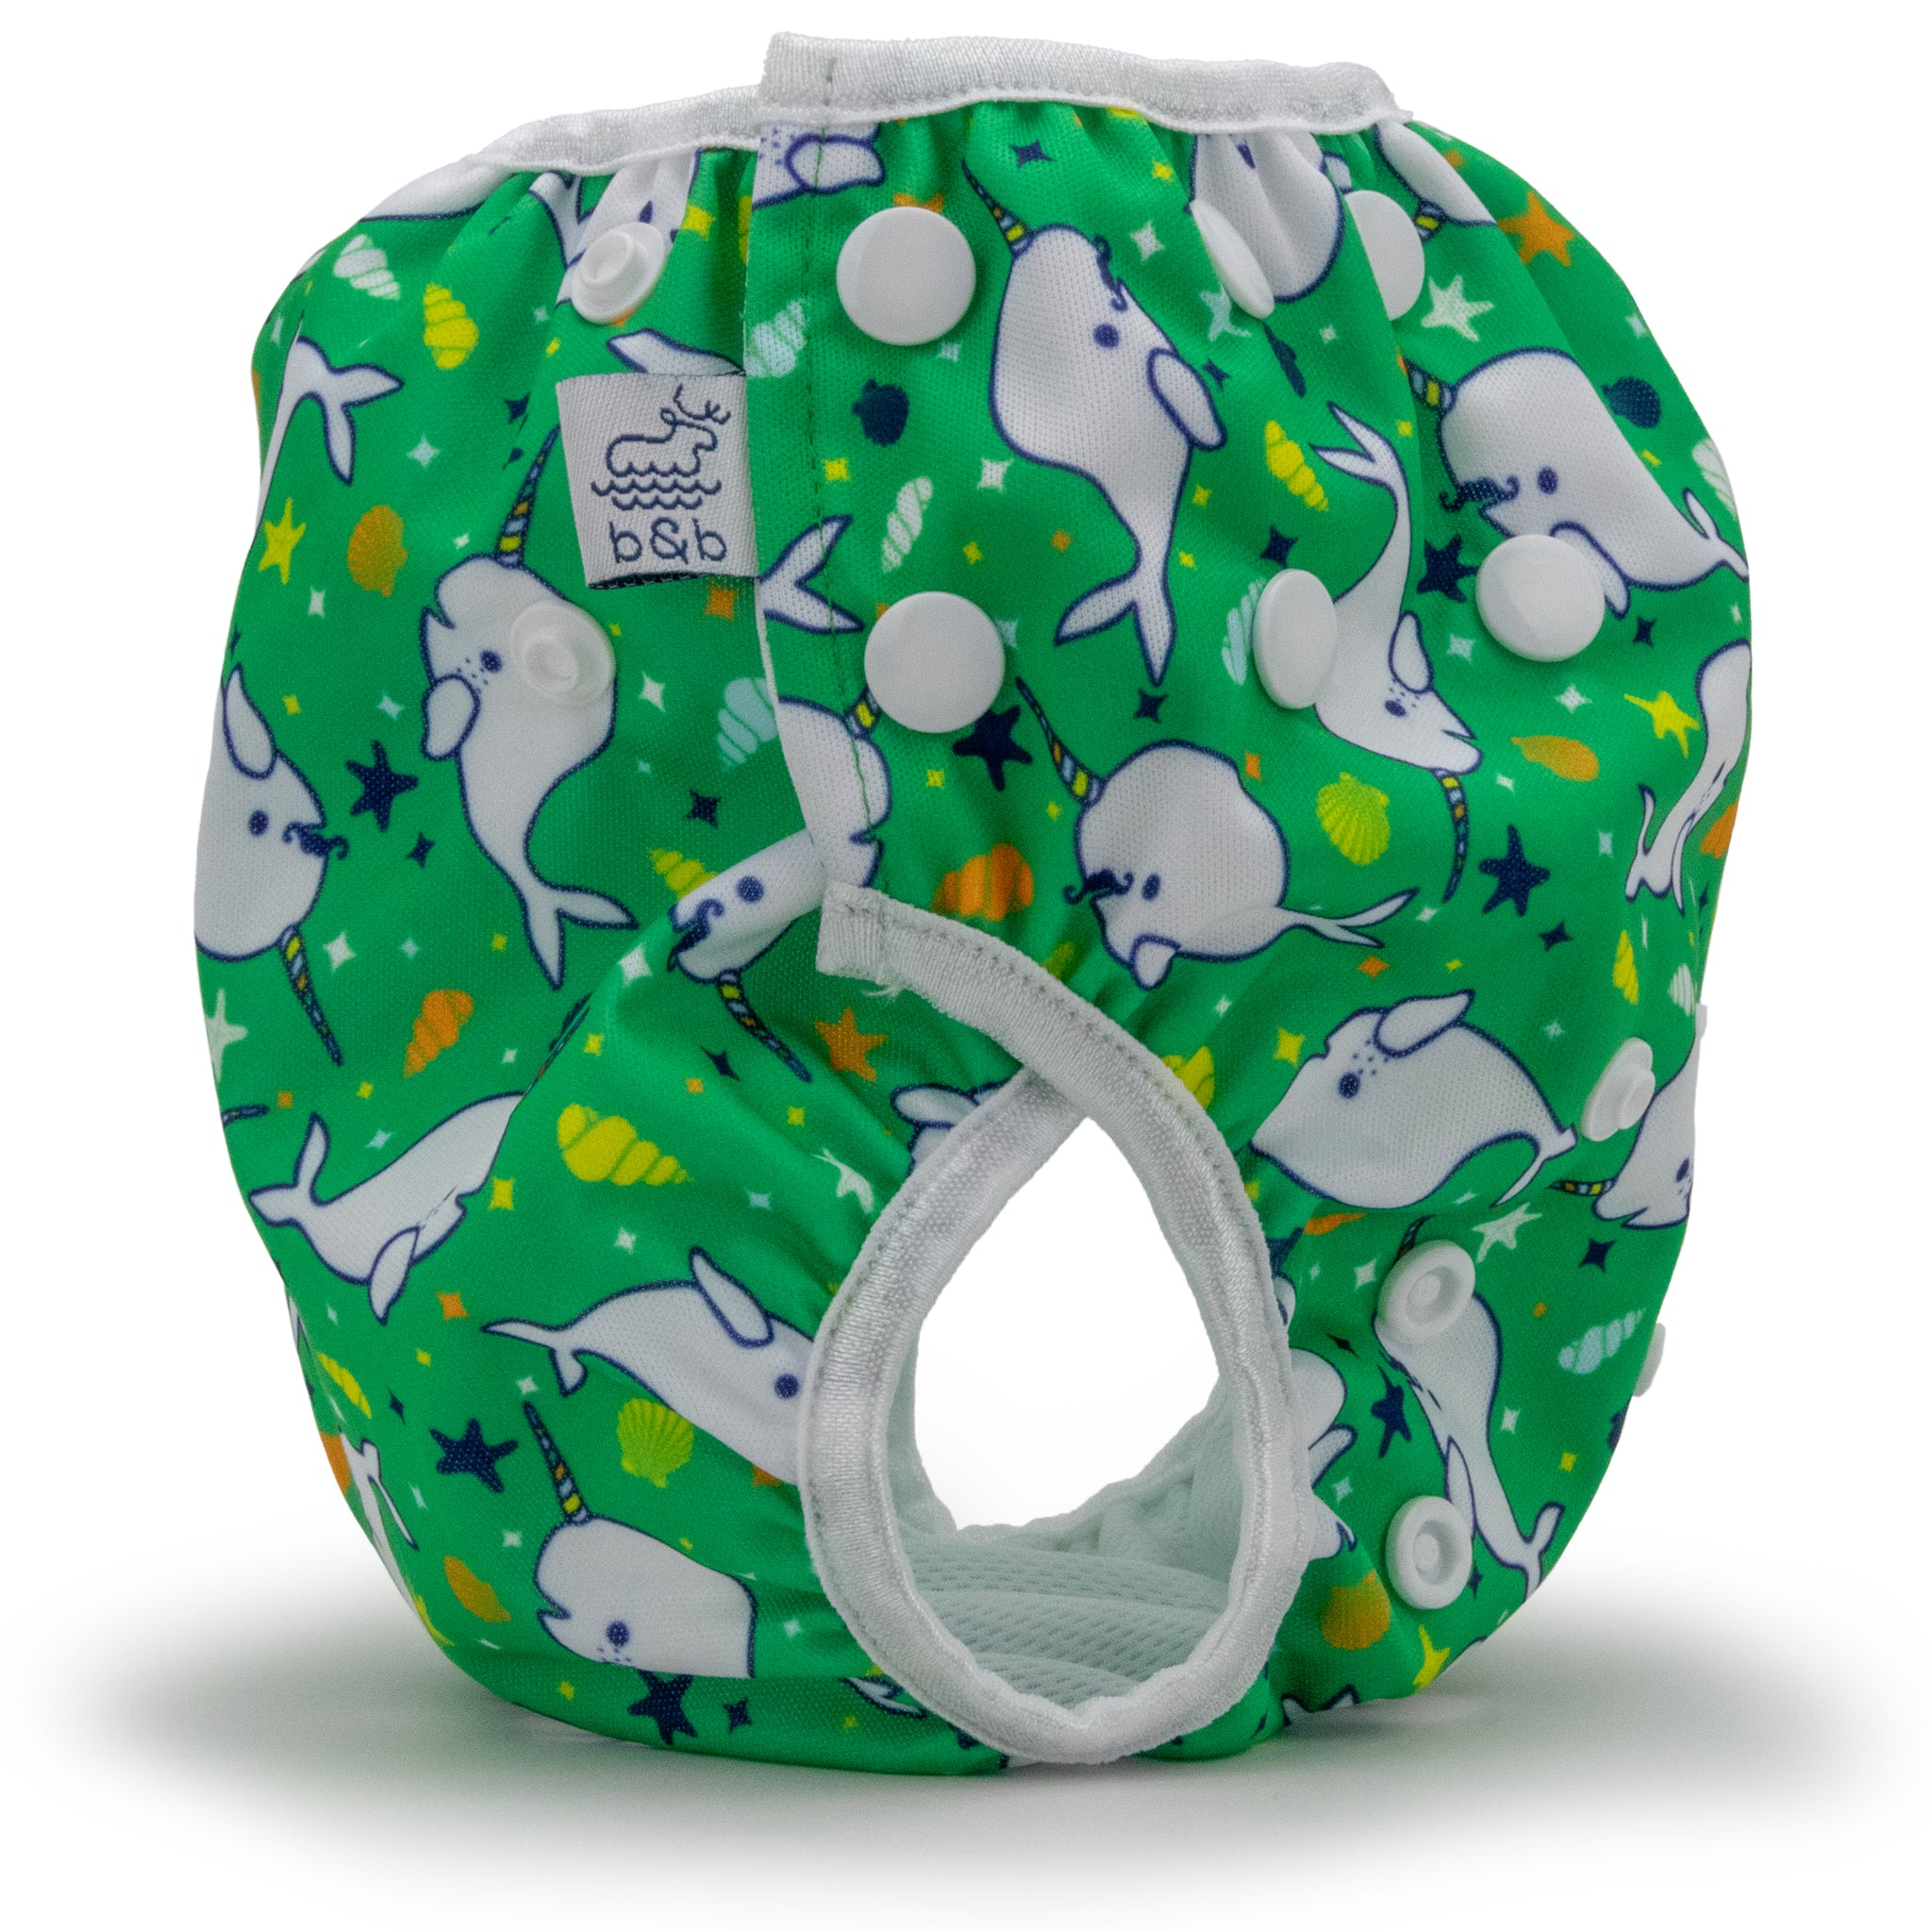 Narwhals 0-3 years Nageuret  Swim Diaper (Green)